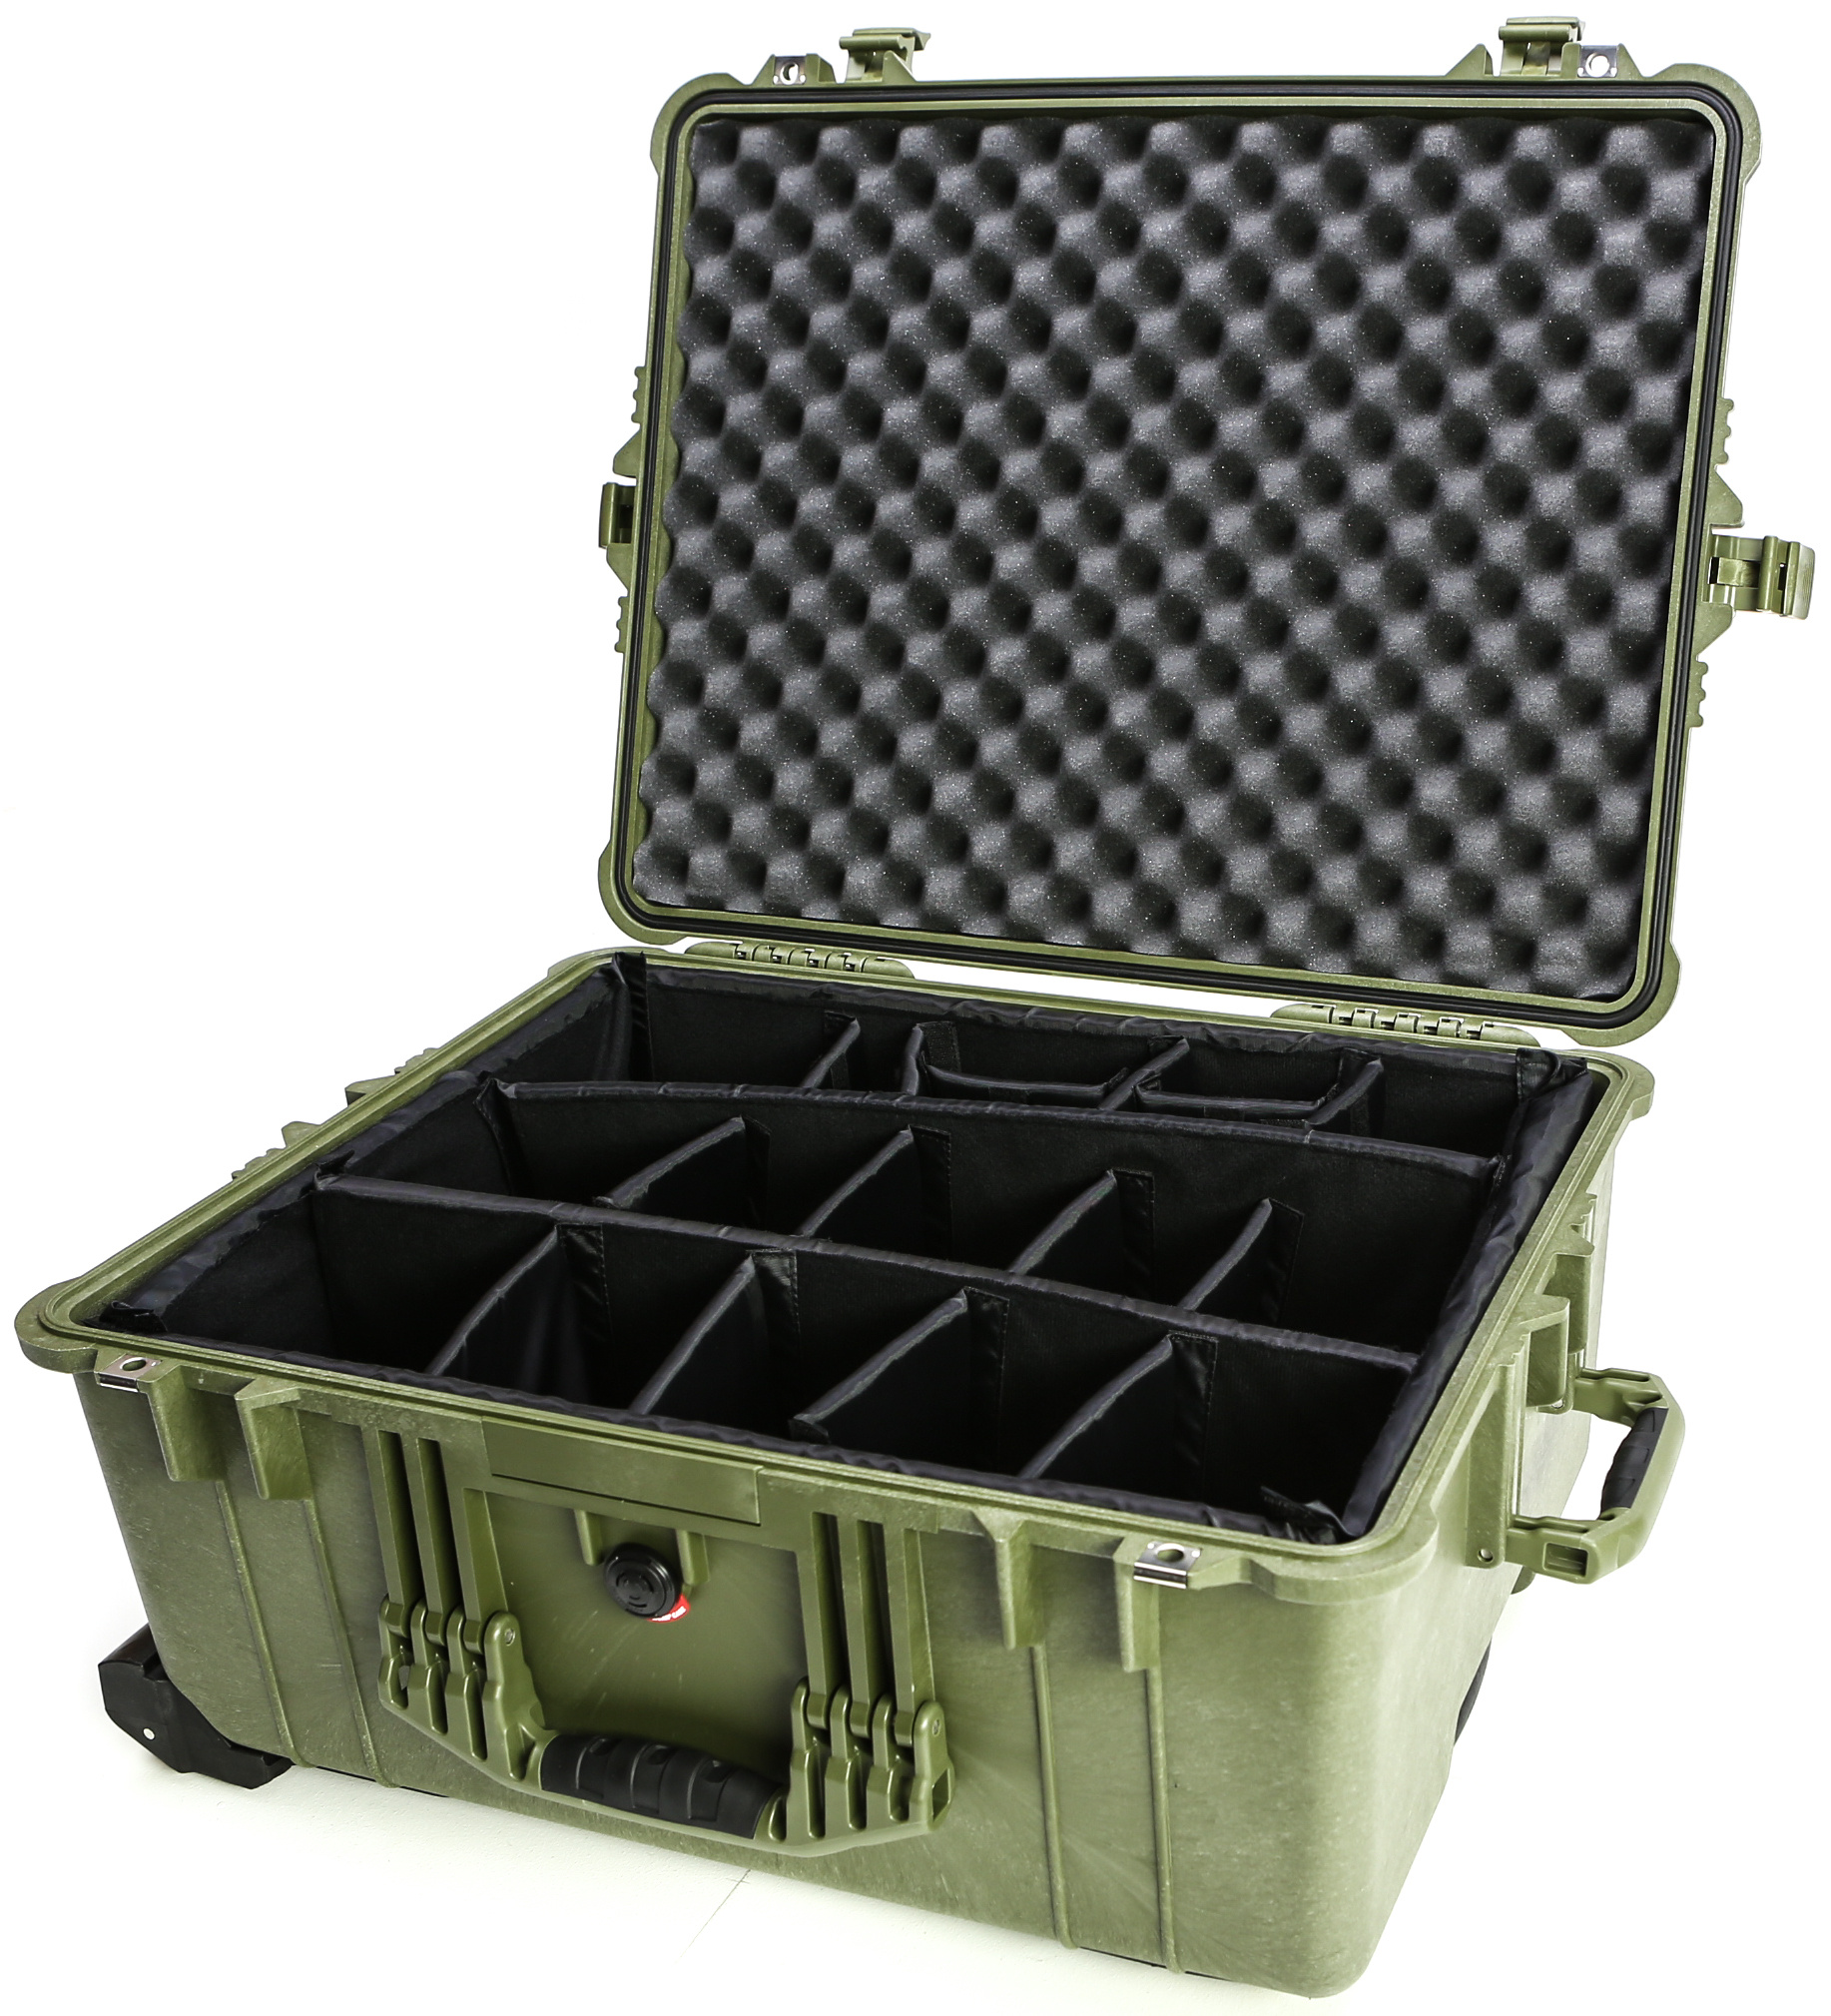 Pelican 1614 Case with Padded Dividers (Olive Drab Green)